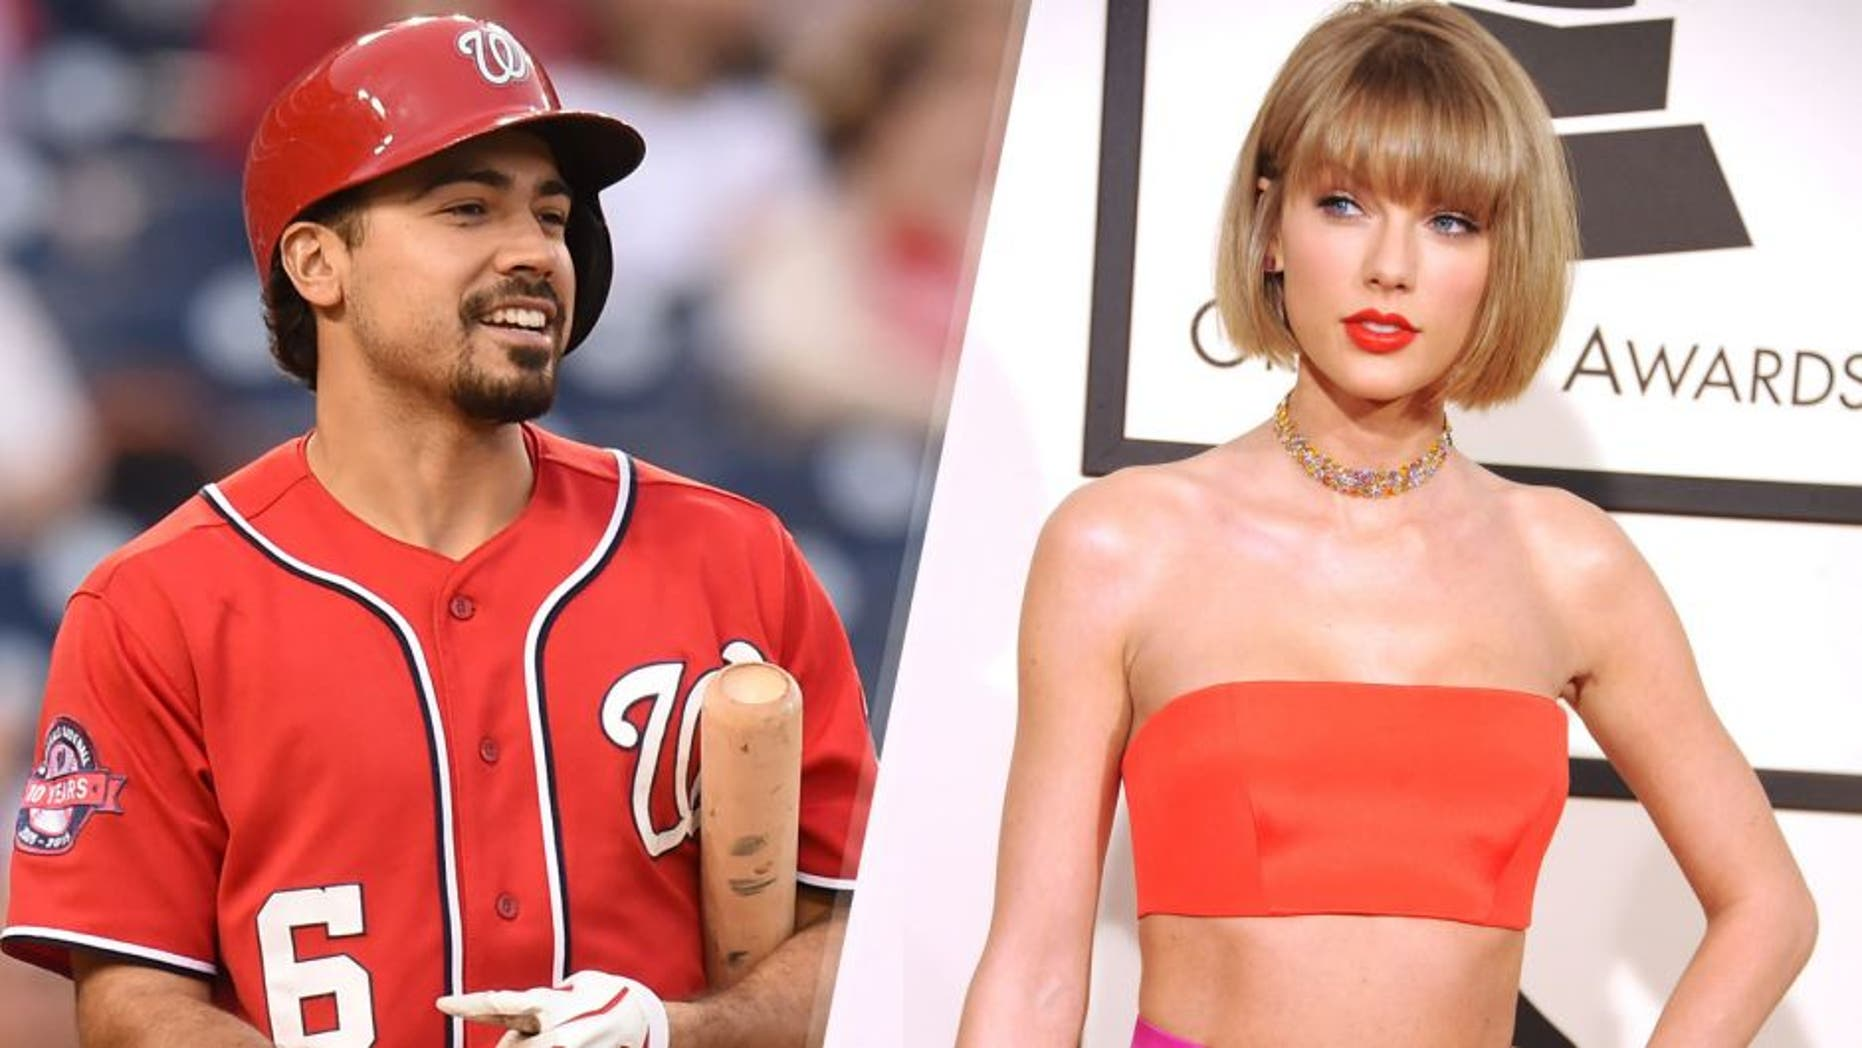 WASHINGTON, DC - SEPTEMBER 26: Anthony Rendon #6 of the Washington Nationals looks on during a baseball game against the Philadelphia Phillies at Nationals Park on September 26, 2015 in Washington, DC. The Nationals won 2-0. (Photo by Mitchell Layton/Getty Images) LOS ANGELES, CA - FEBRUARY 15: Taylor Swift attends the 58th GRAMMY Awards at Staples Center February 15, 2016 in Los Angeles, California. (Photo by Sammy Smith/WireImage)